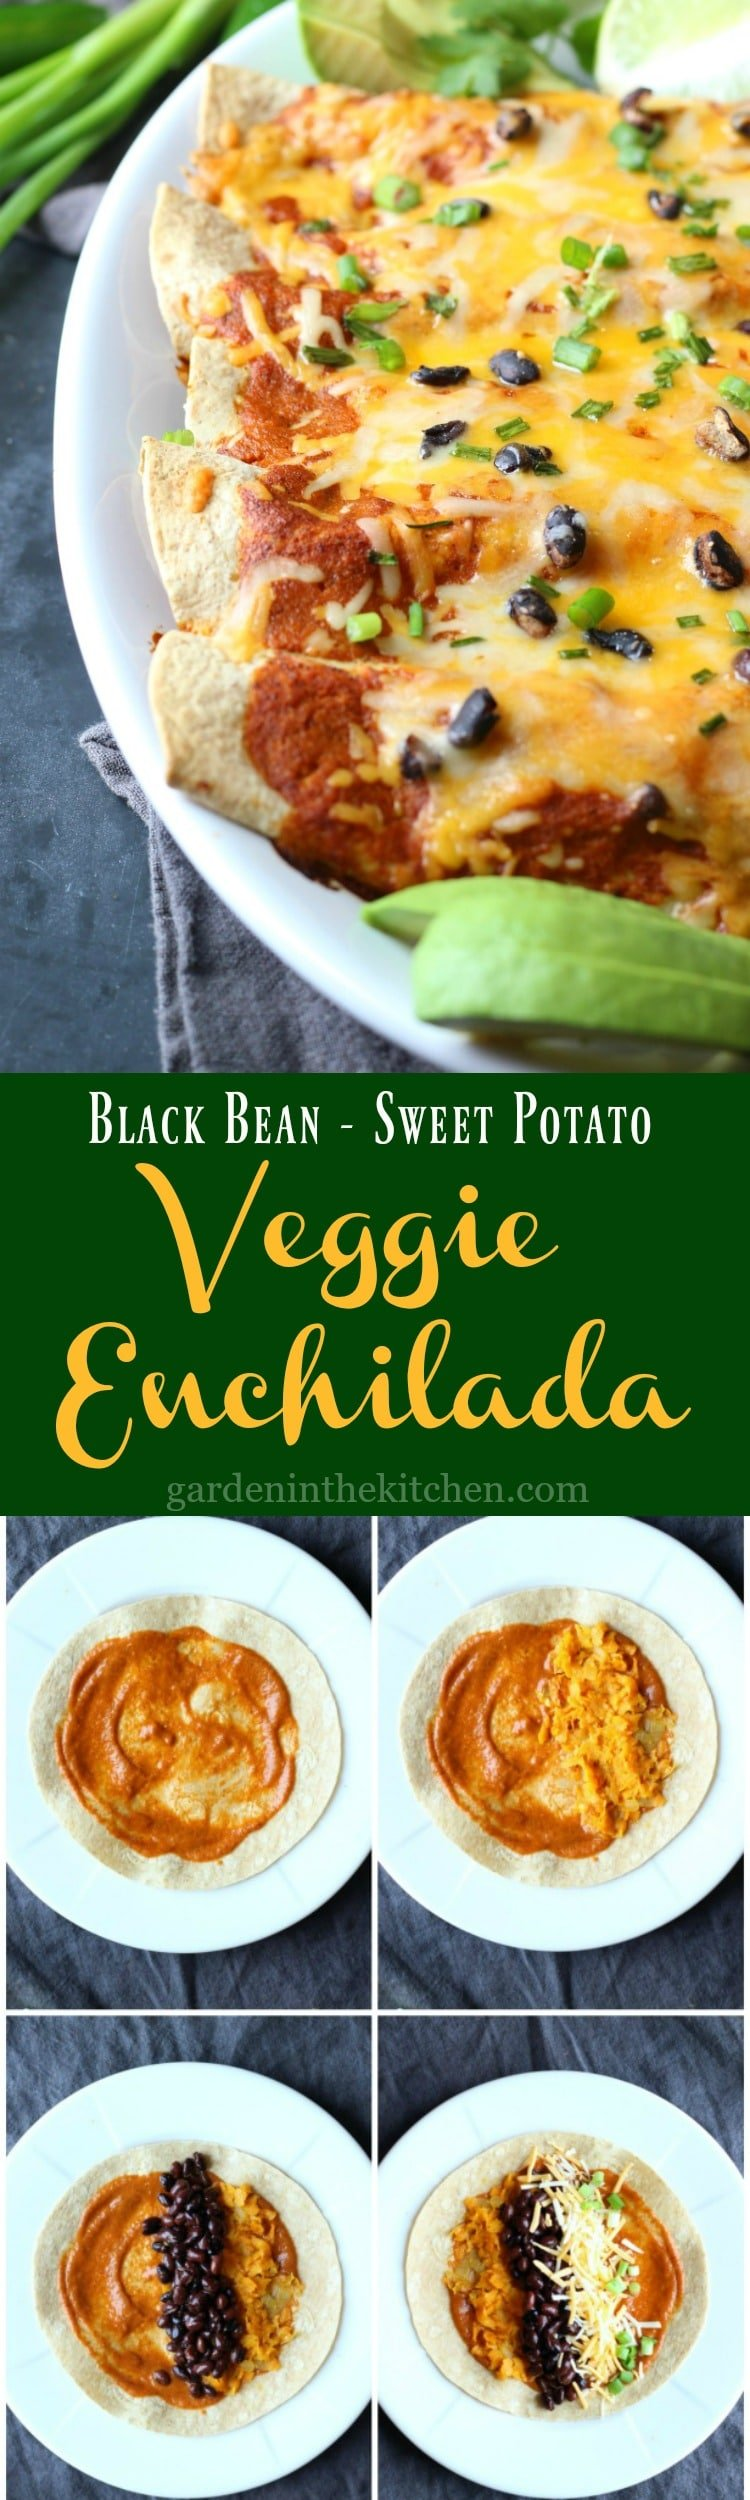 Black Bean Enchilada (Vegetarian) |gardeninthekitchen.com